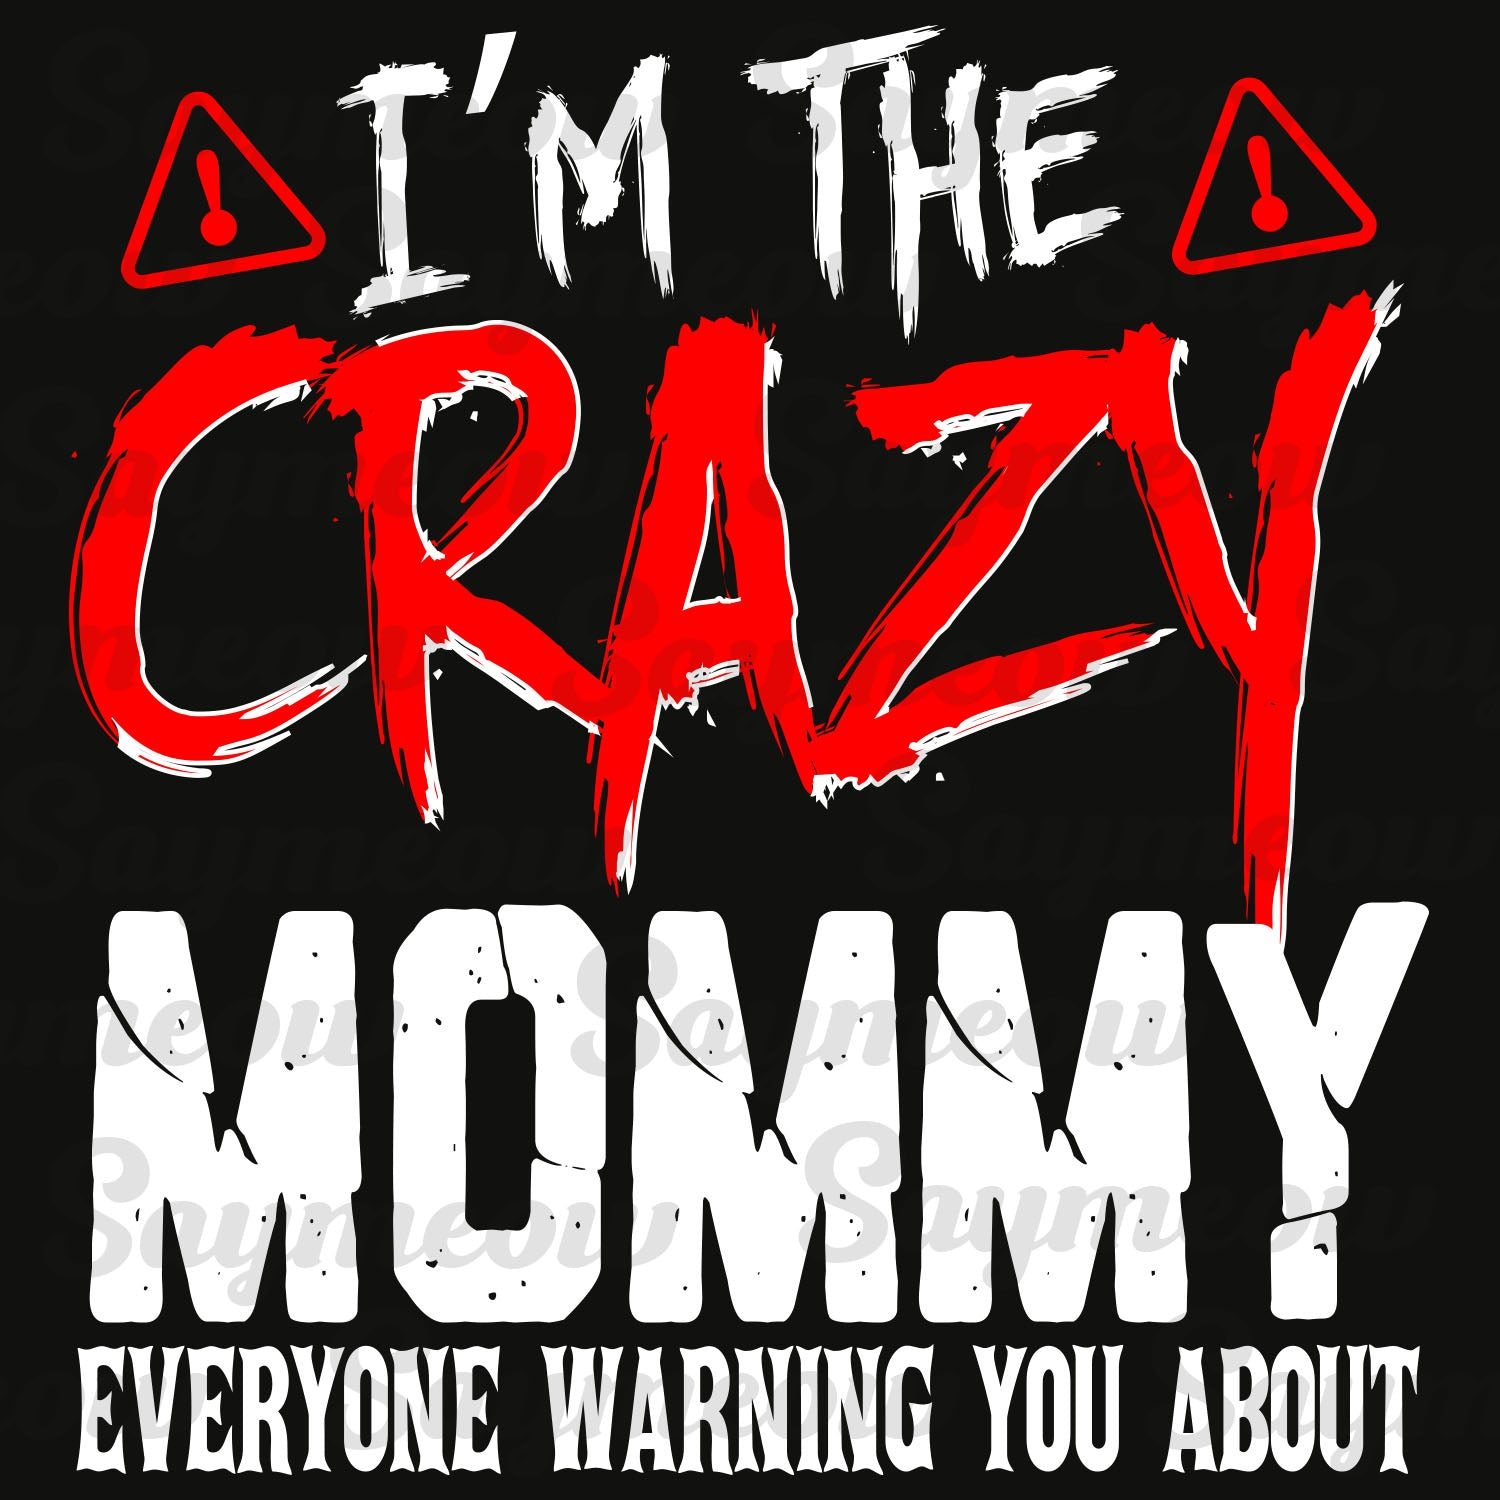 I'm the crazymommy, mommy svg, mommy gift, birthday mommy, mommy party, birthday gift, best gift ever,family svg, family shirt,family gift,trending svg, Files For Silhouette, Files For Cricut, SVG, DXF, EPS, PNG, Instant Download